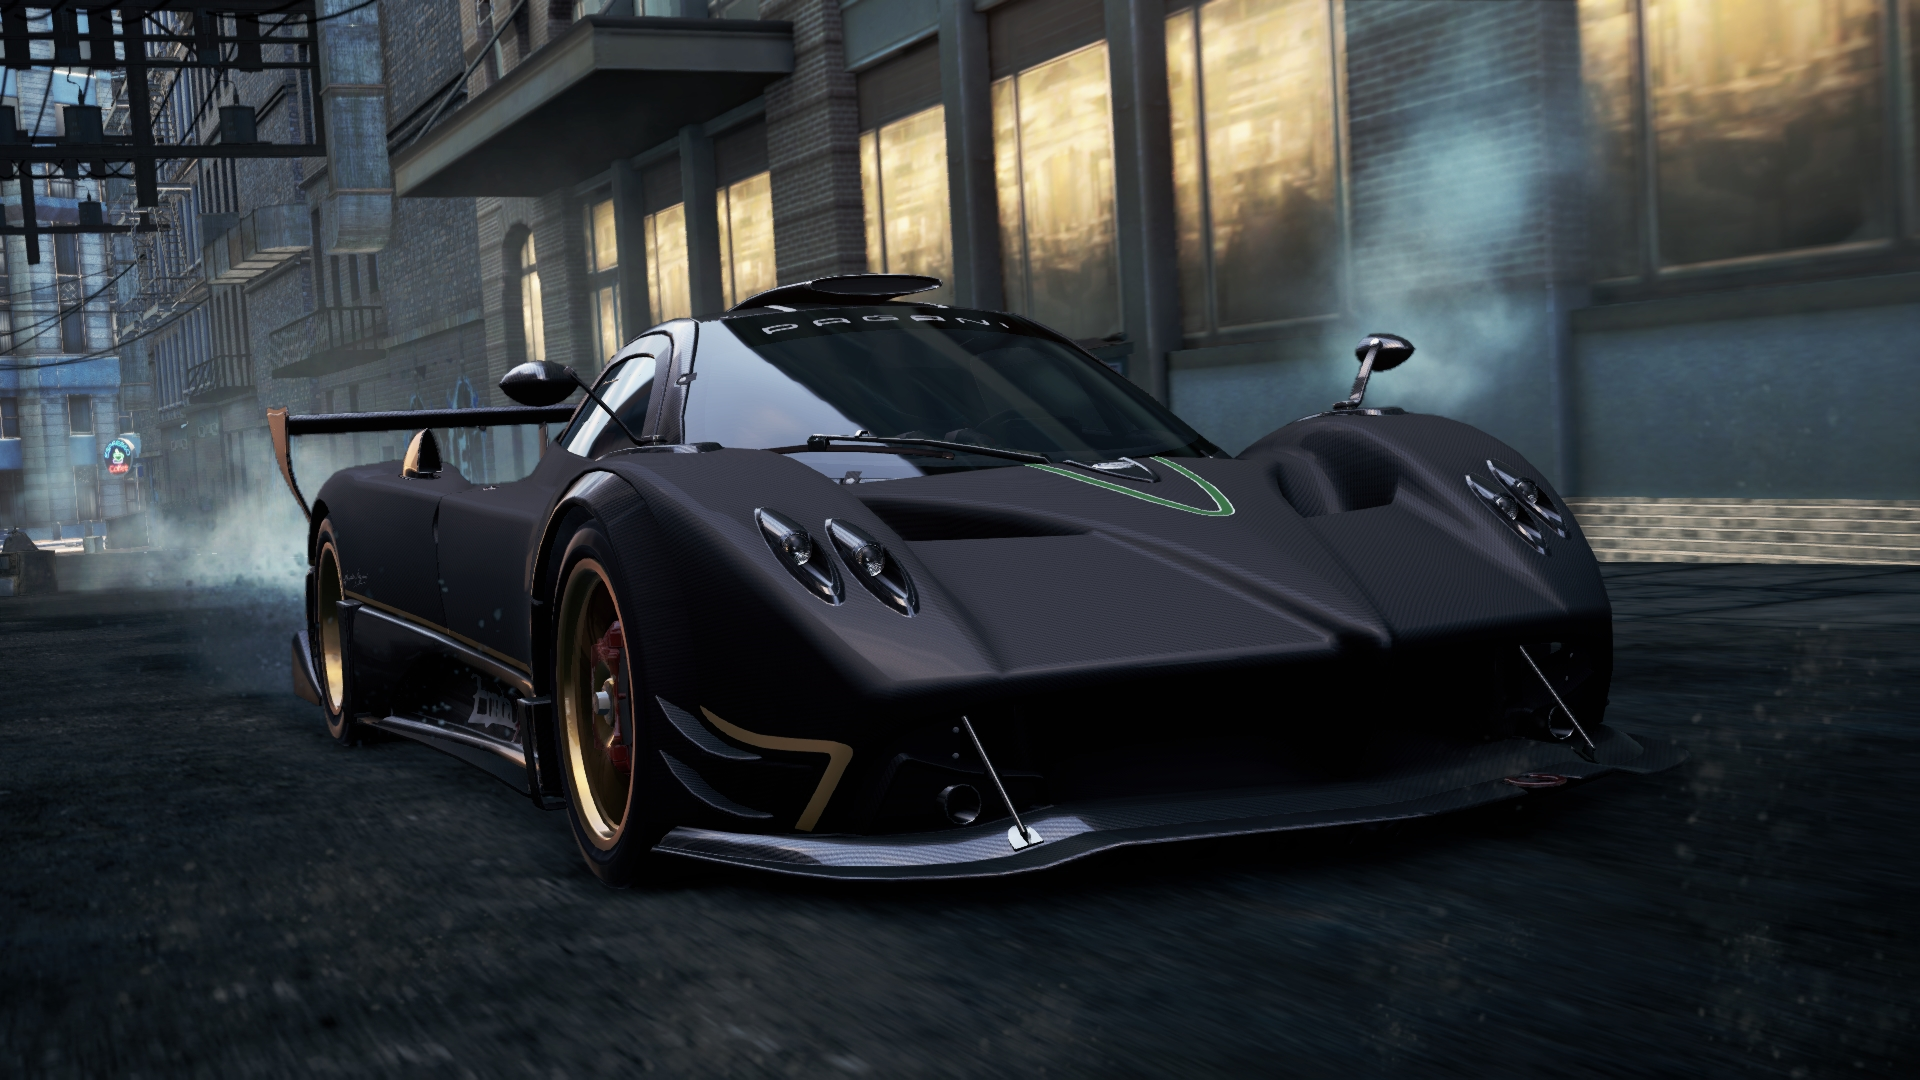 nfs underground 2 full map with Pagani Zonda R on  likewise Sexy Cars And Girls Wallpaper And Pictures furthermore By sub category in addition Hummer H1 Alpha additionally Need For Speed.